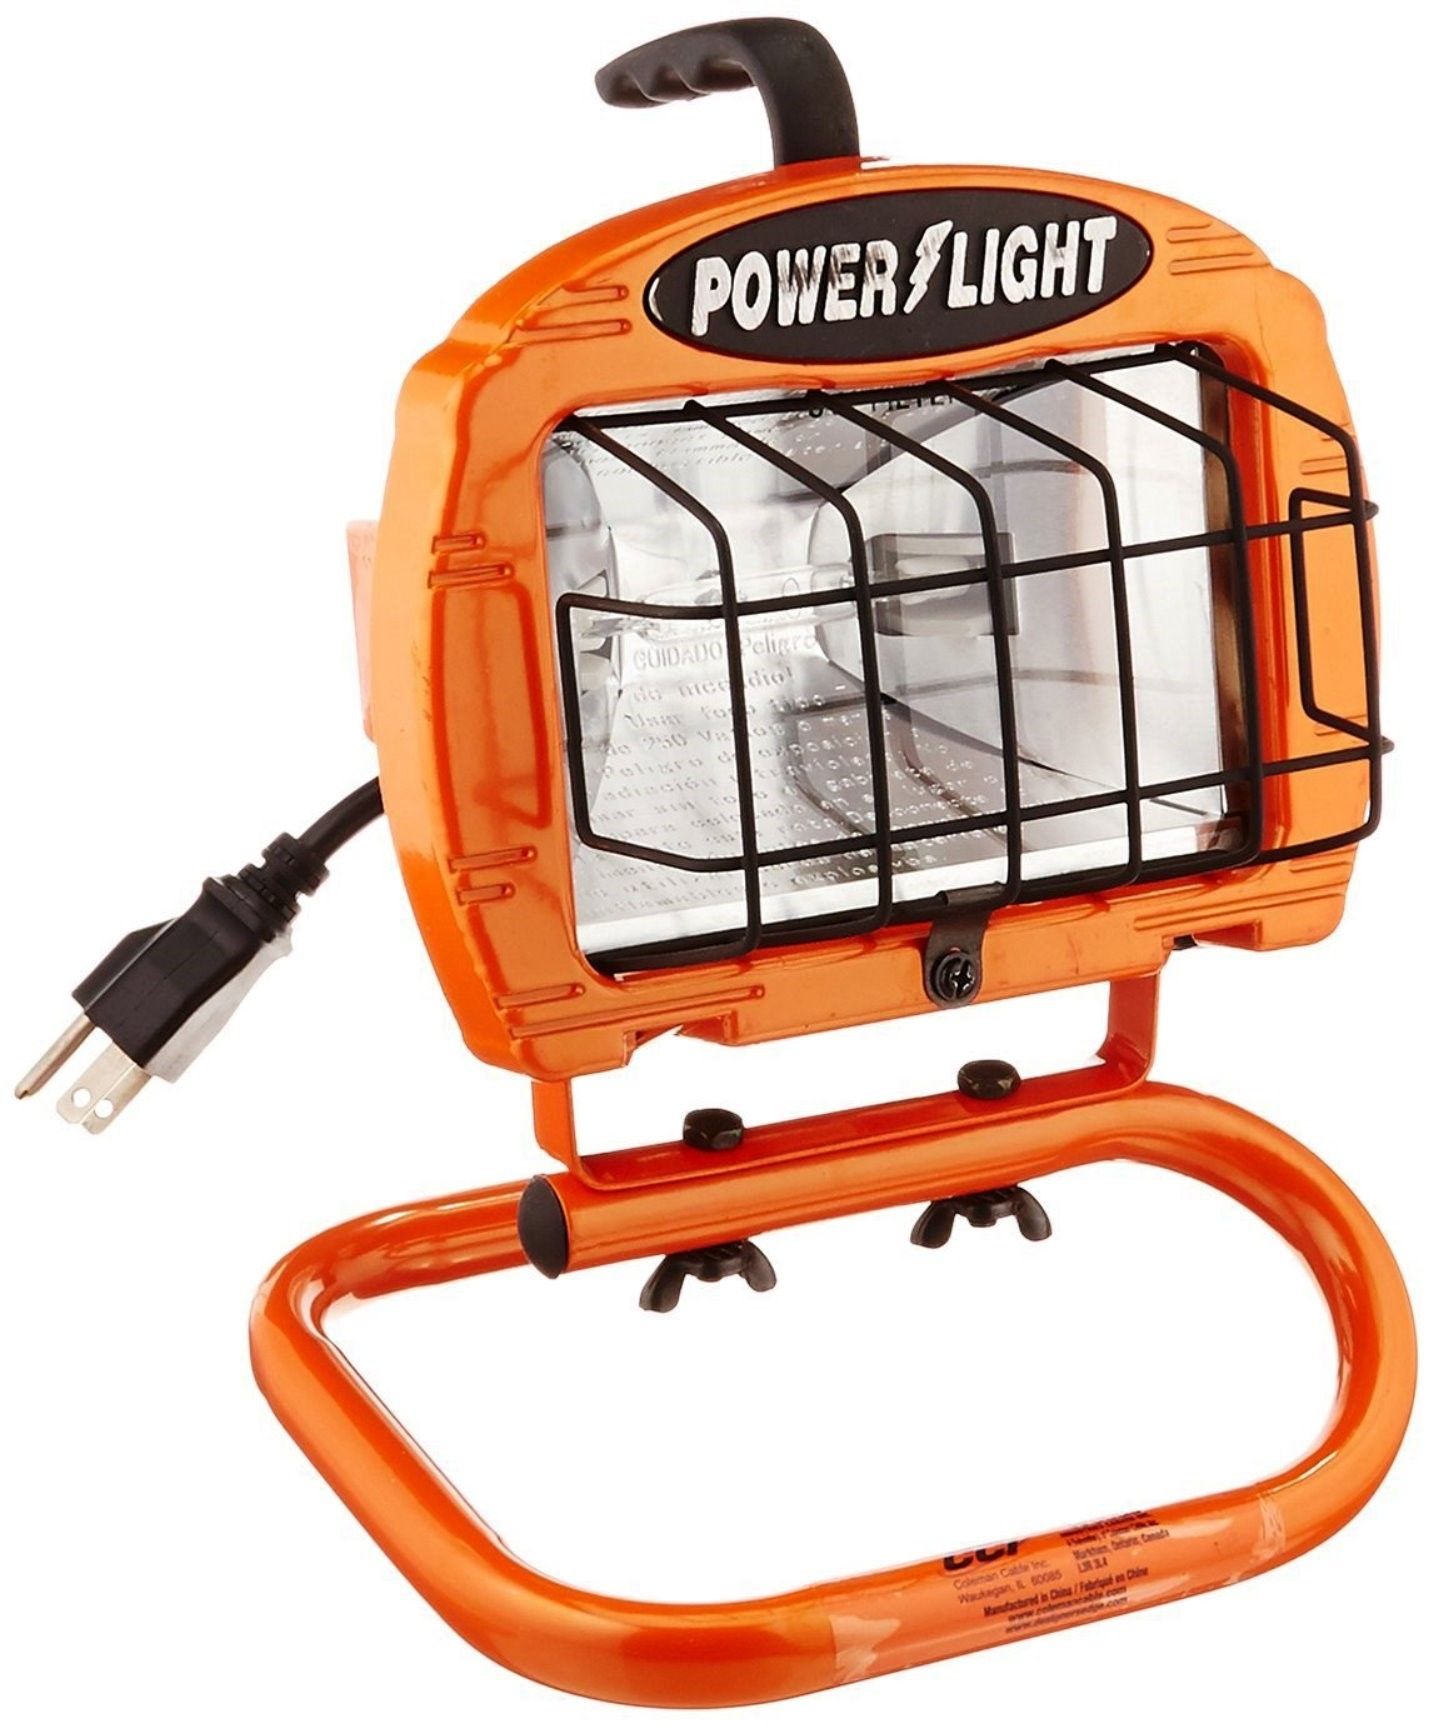 Designers Edge By Coleman Cable L1325 Ecozone Portable: Buy The Coleman Cable L860 Halogen Portable Work Light